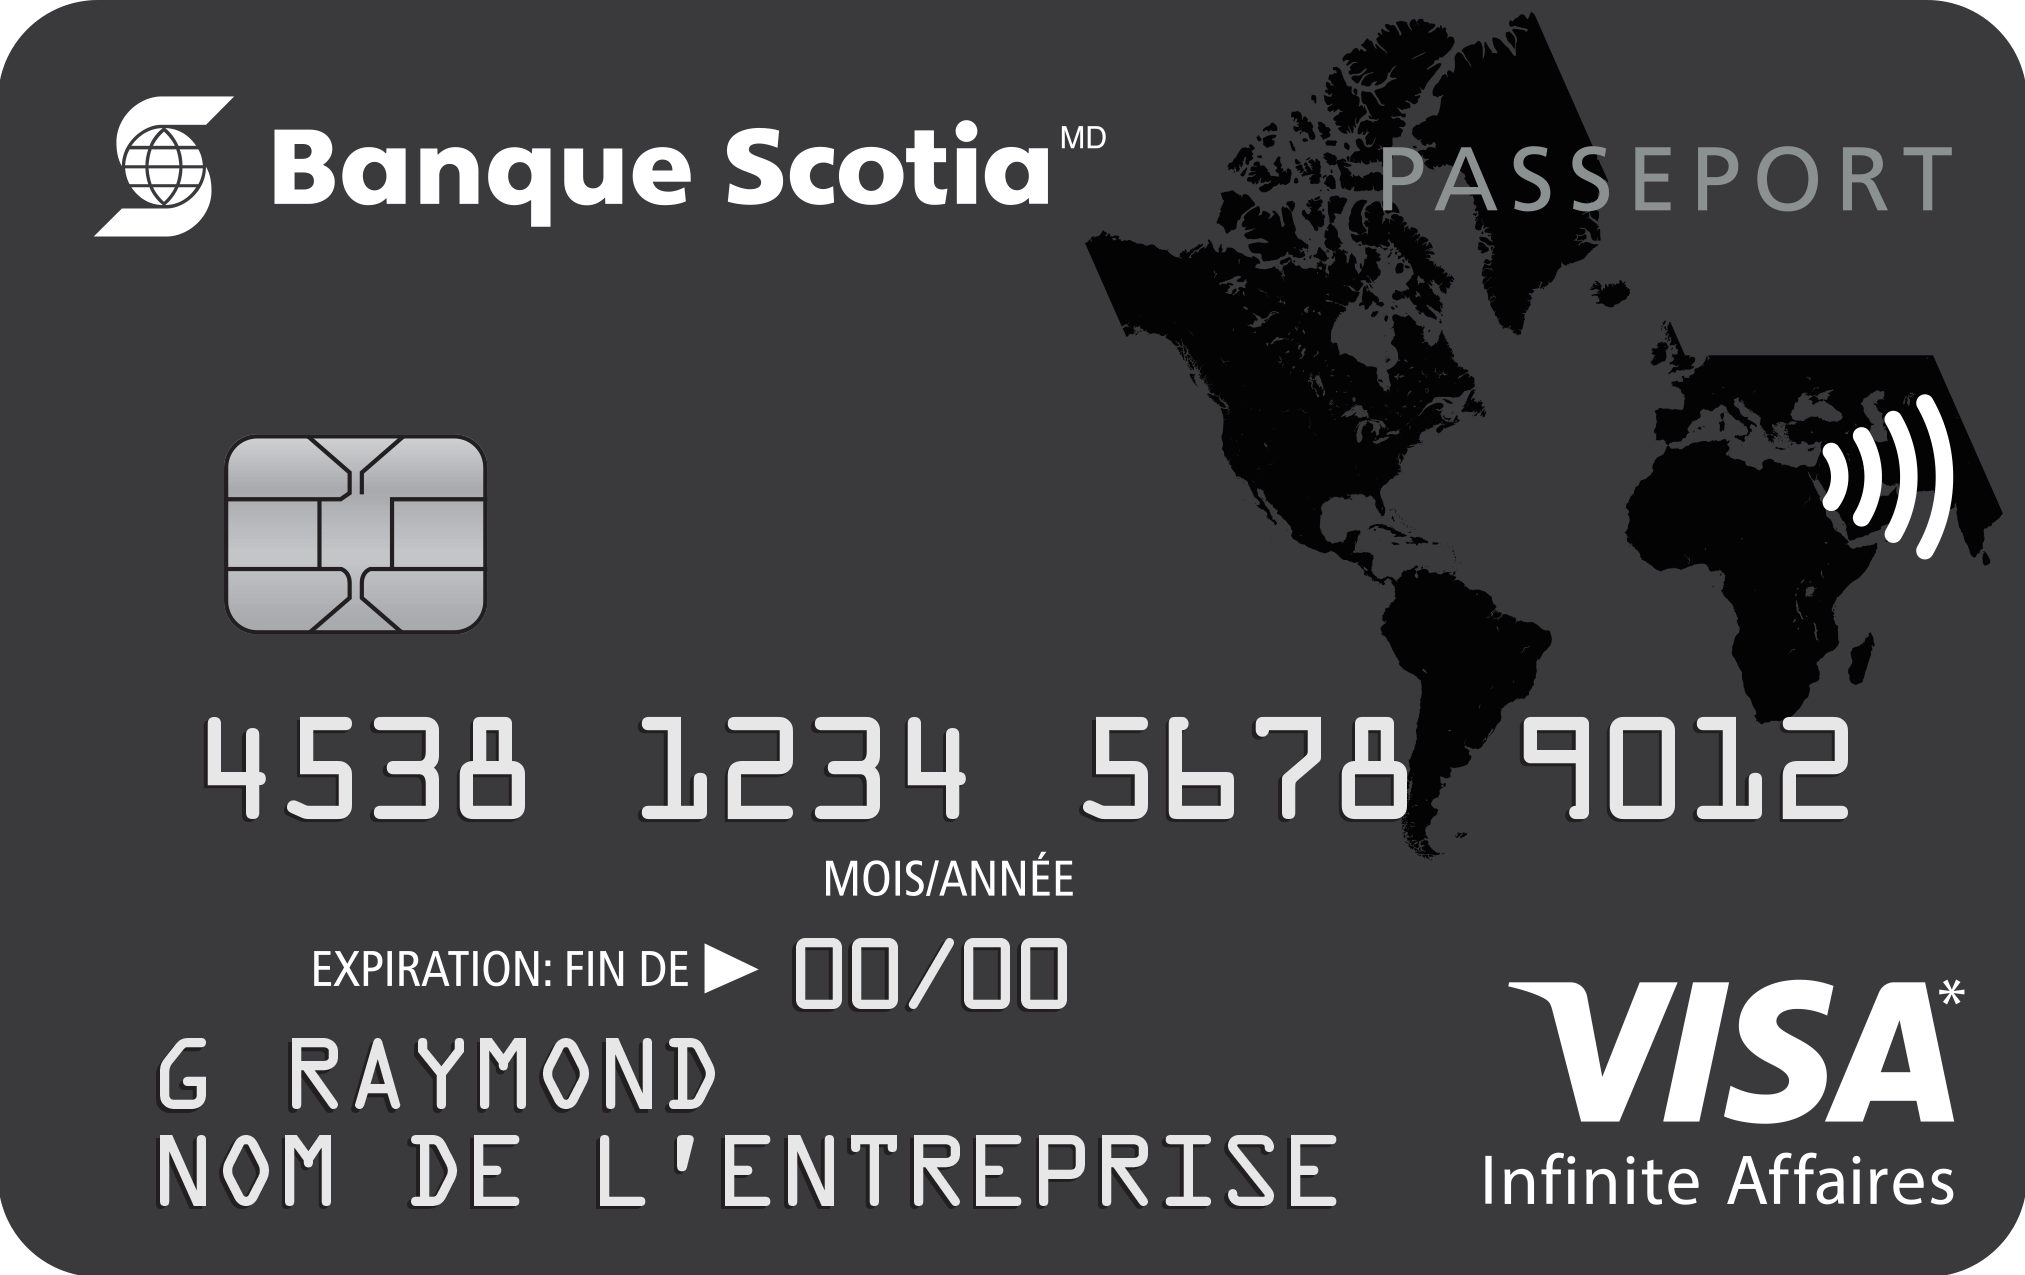 Carte Visa Infinite Affaires Passeport Banque Scotia